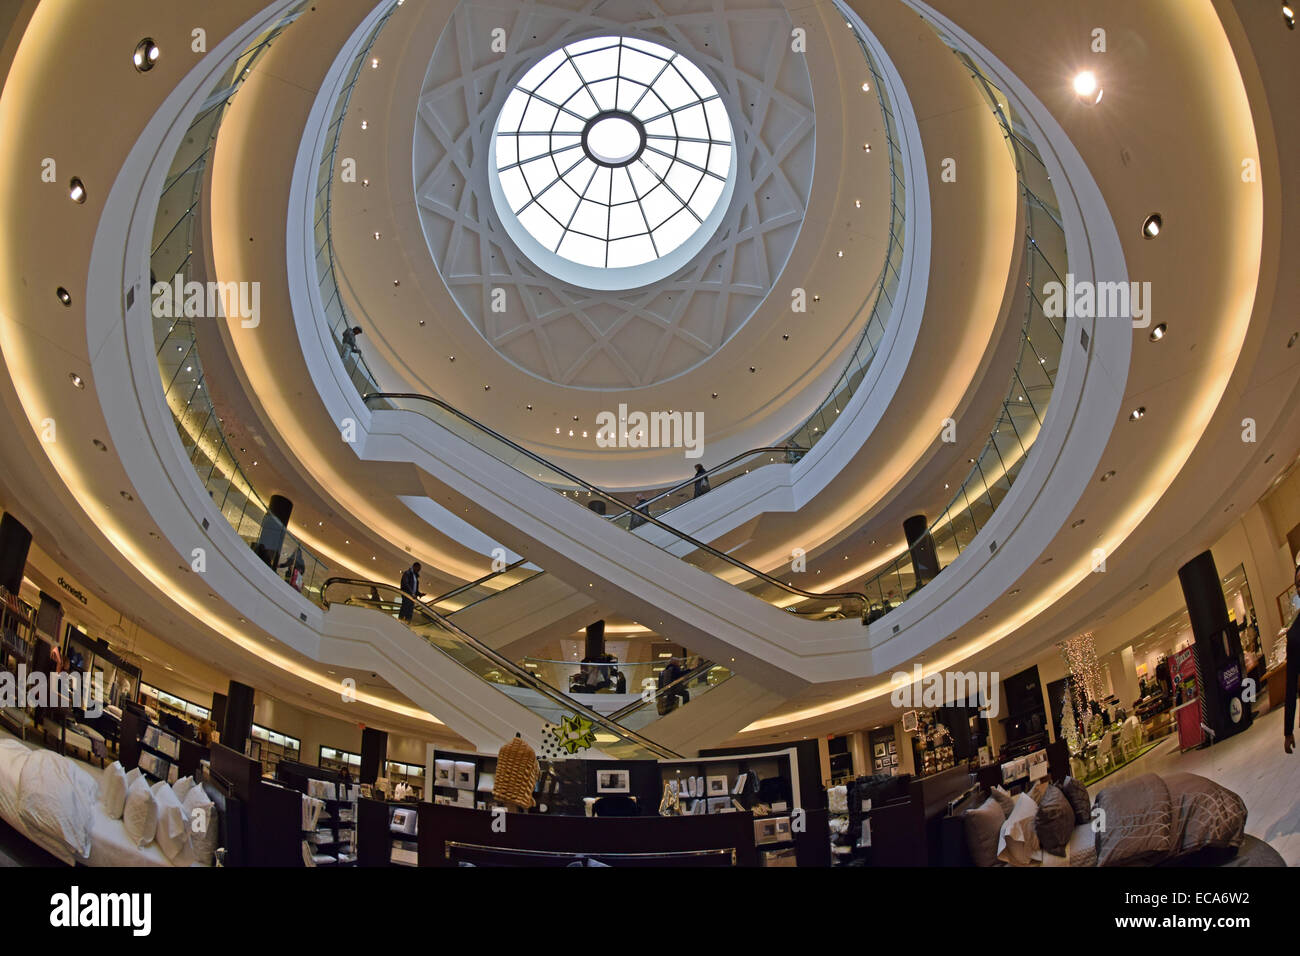 a fisheye lens interior view of 3 floors of bloomingdales at stock photo 76442270 alamy. Black Bedroom Furniture Sets. Home Design Ideas